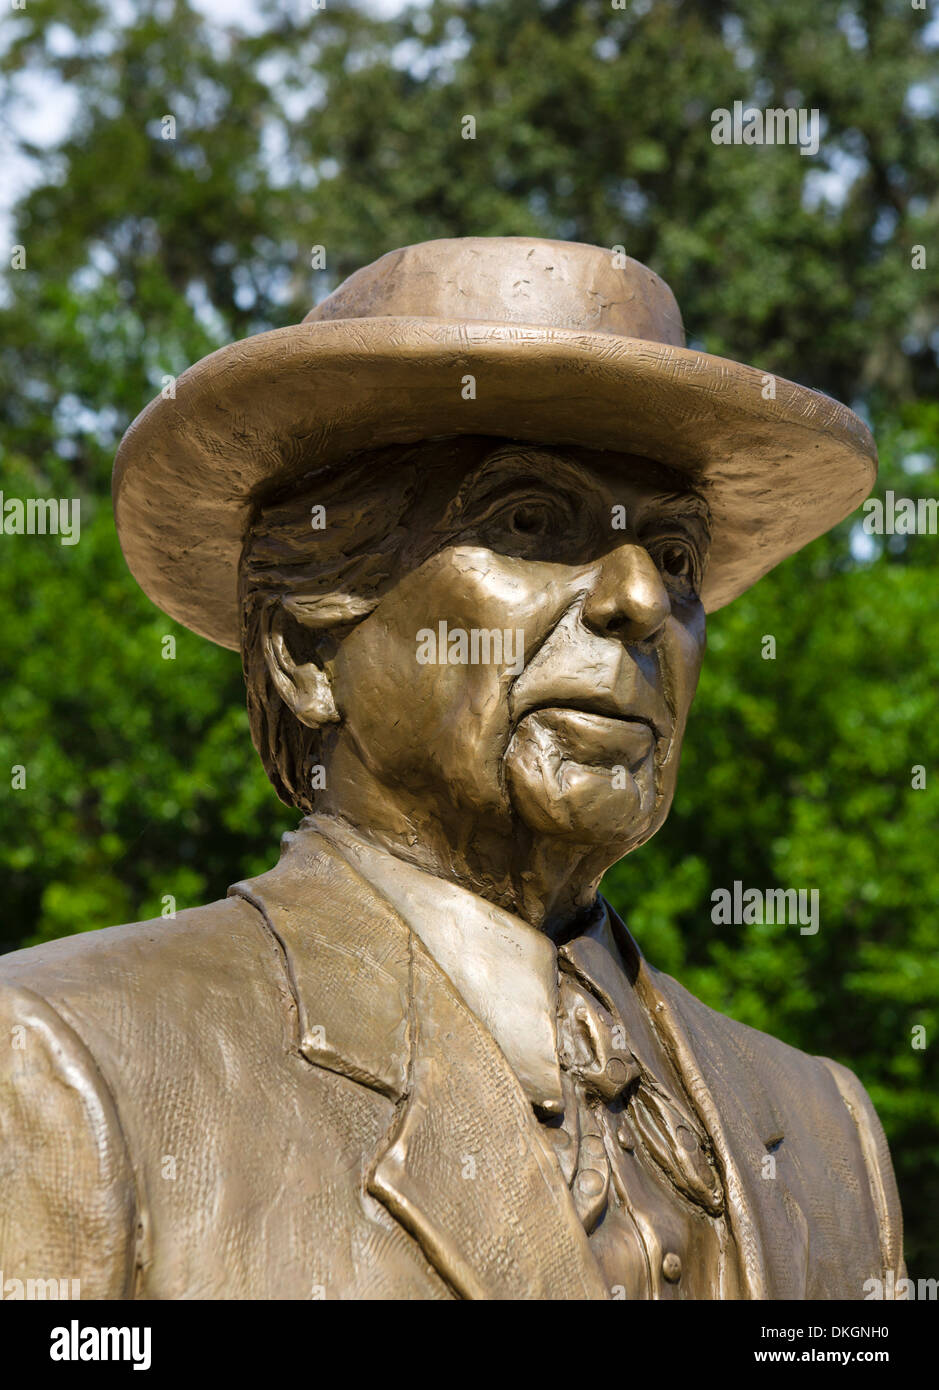 Statue of Frank Lloyd Wright outside Visitor Center, Frank Lloyd Wright Campus, Florida Southern College, Lakeland, Florida, USA - Stock Image